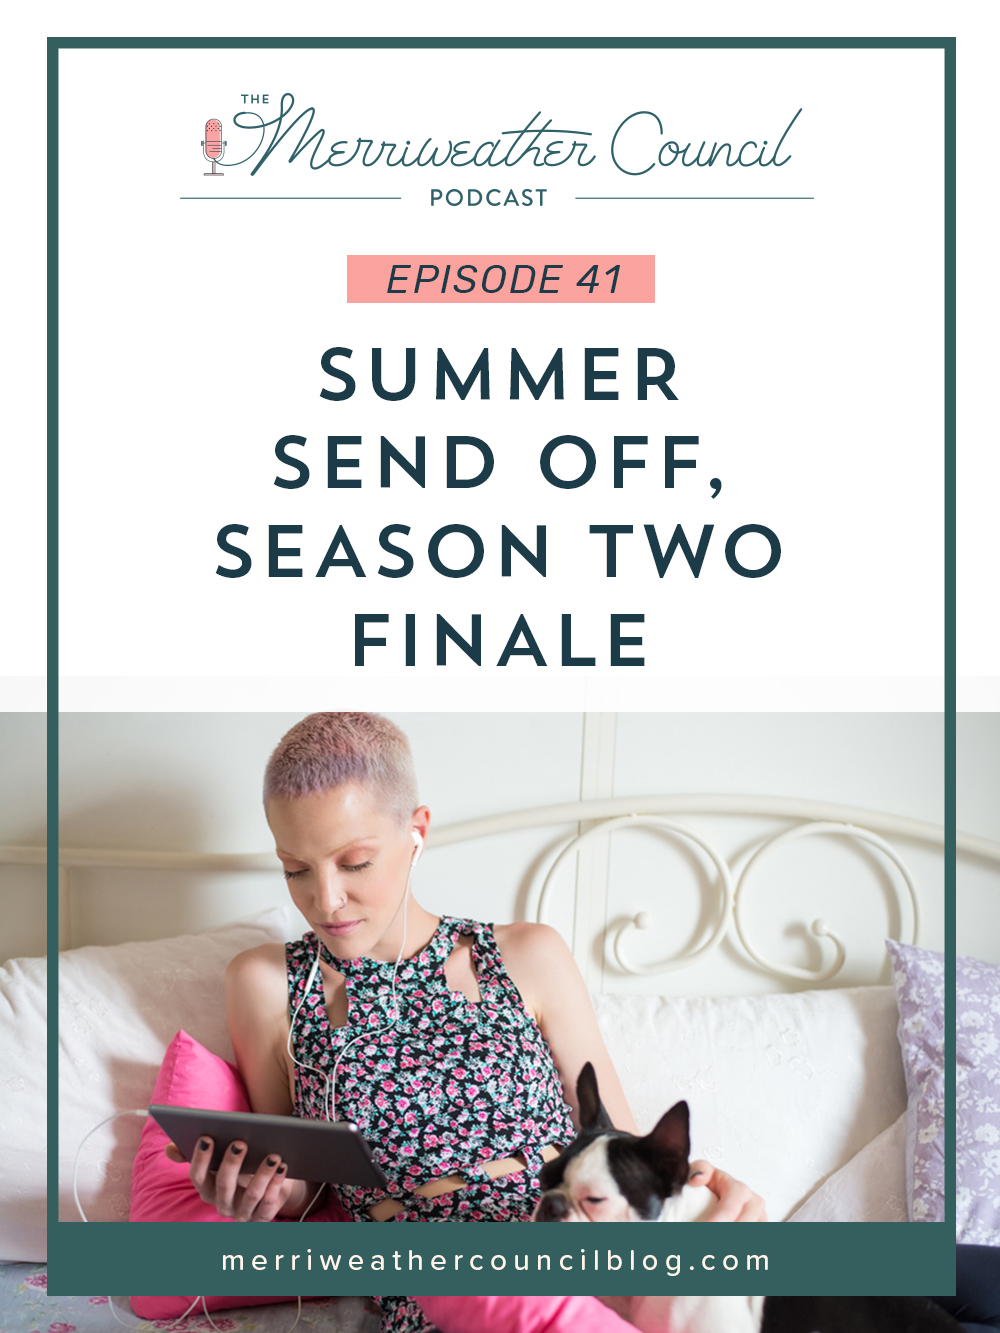 Episode 41: Summer Send Off, Season Two Finale | The Merriweather Council Podcast